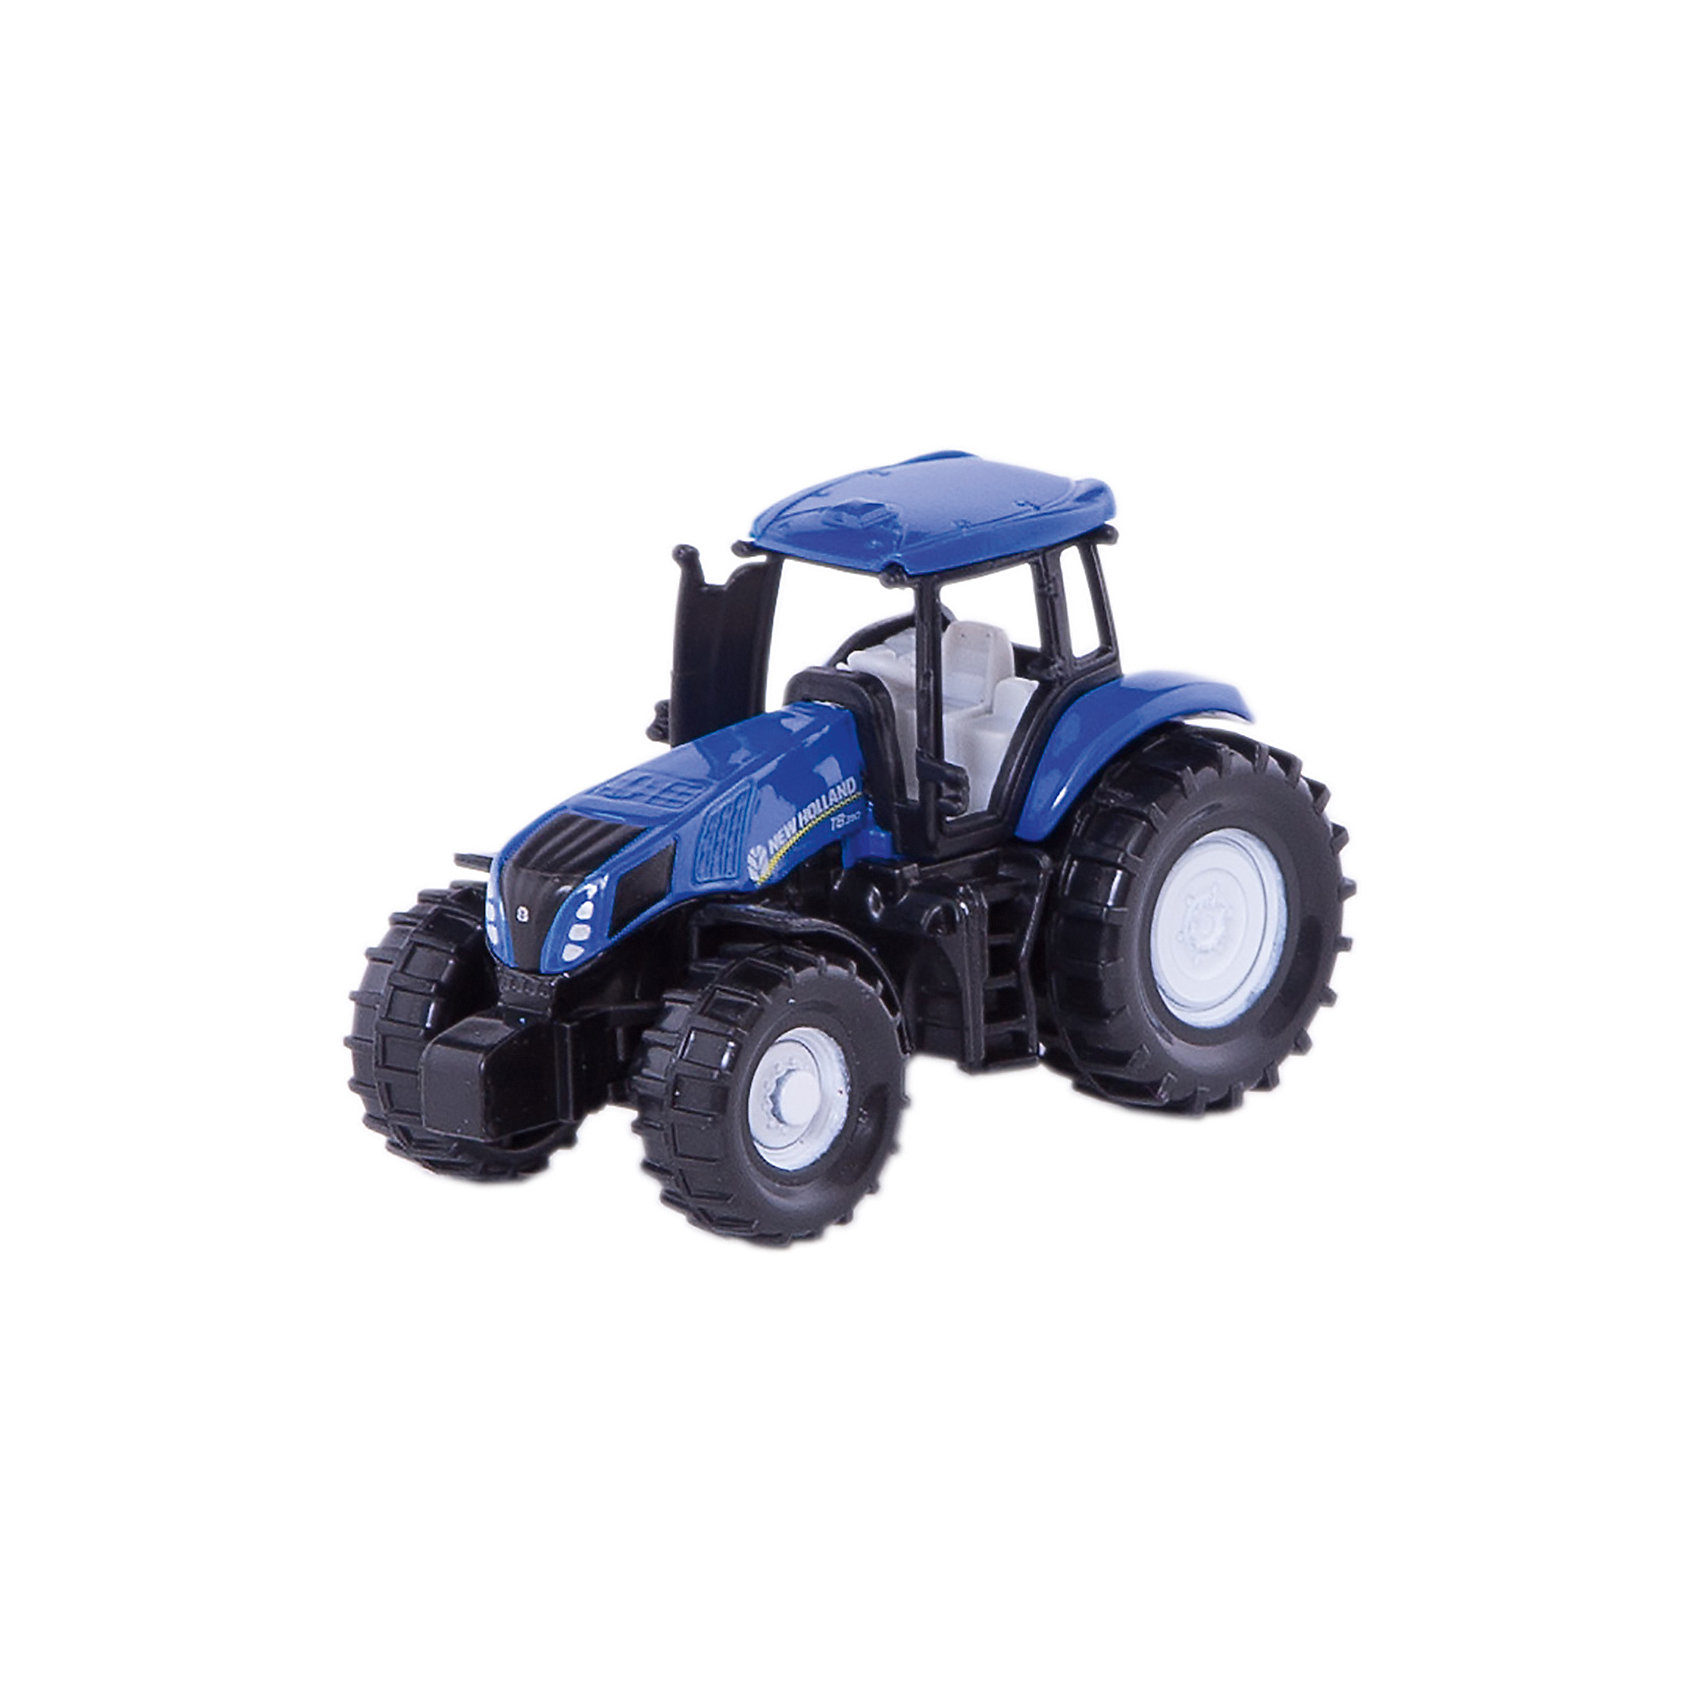 SIKU SIKU 1012 Трактор New Holland T8.390 tomy трактор new holland t7 270 с 3 лет